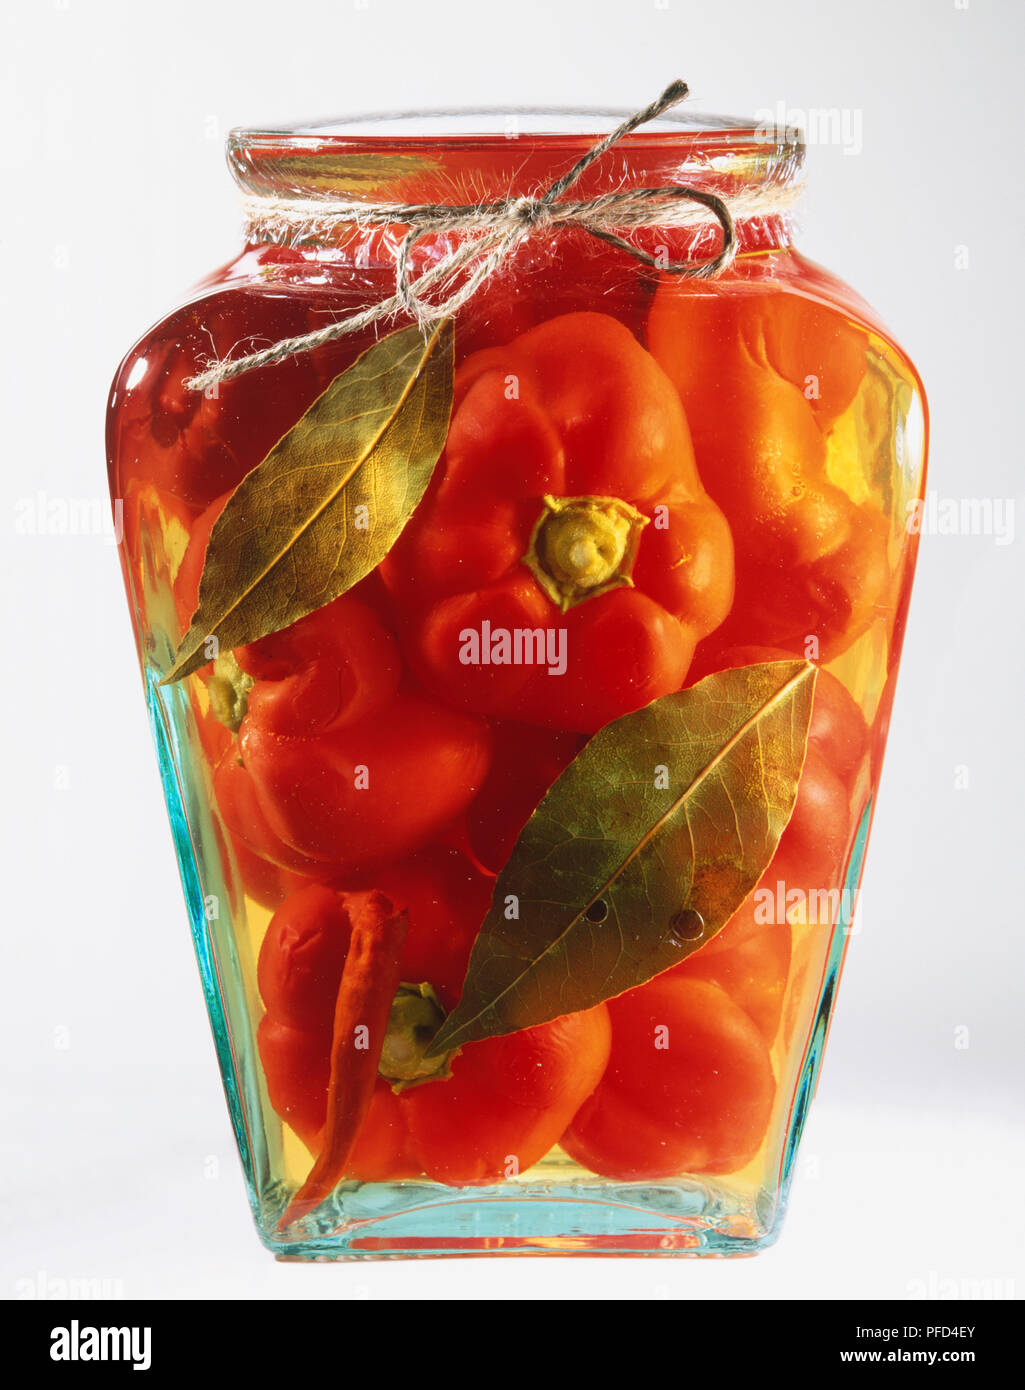 Glass jar with red peppers and herbs preserved in oil - Stock Image